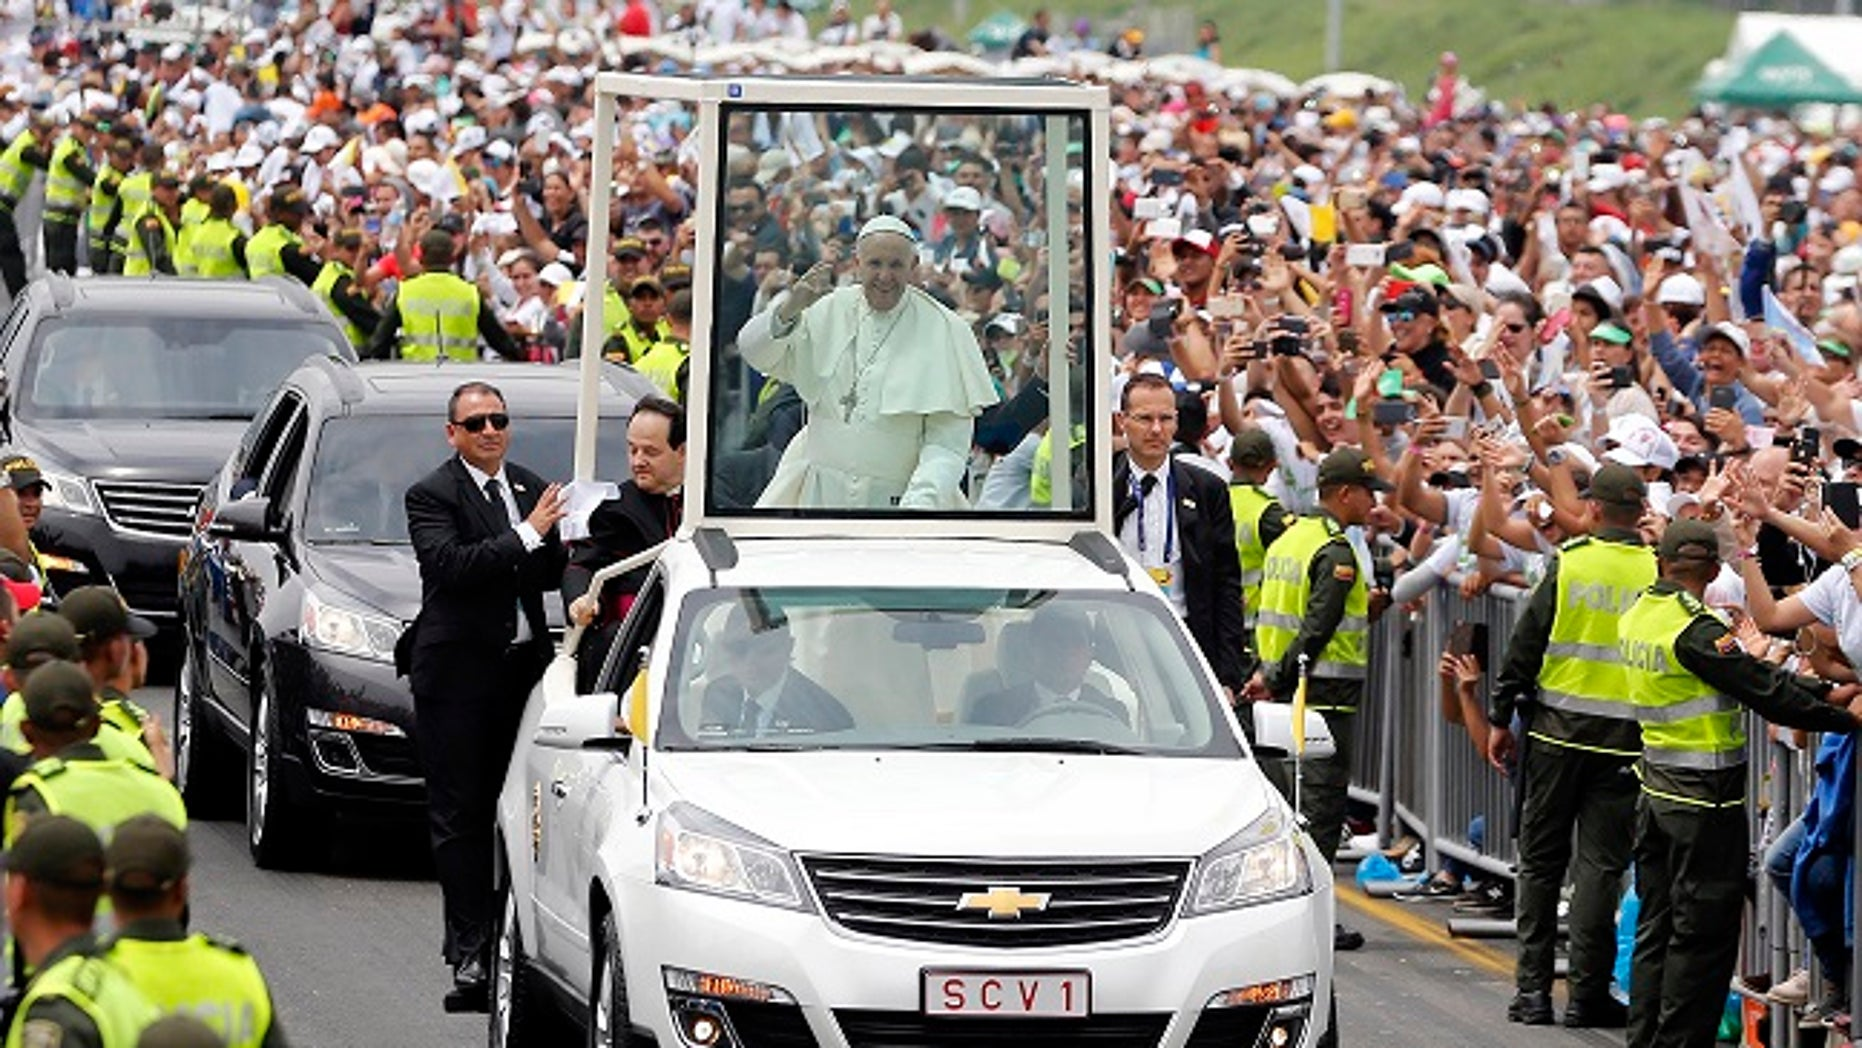 Pope Francis visits Medellin, Colombia, Saturday, Sept. 9, 2017.